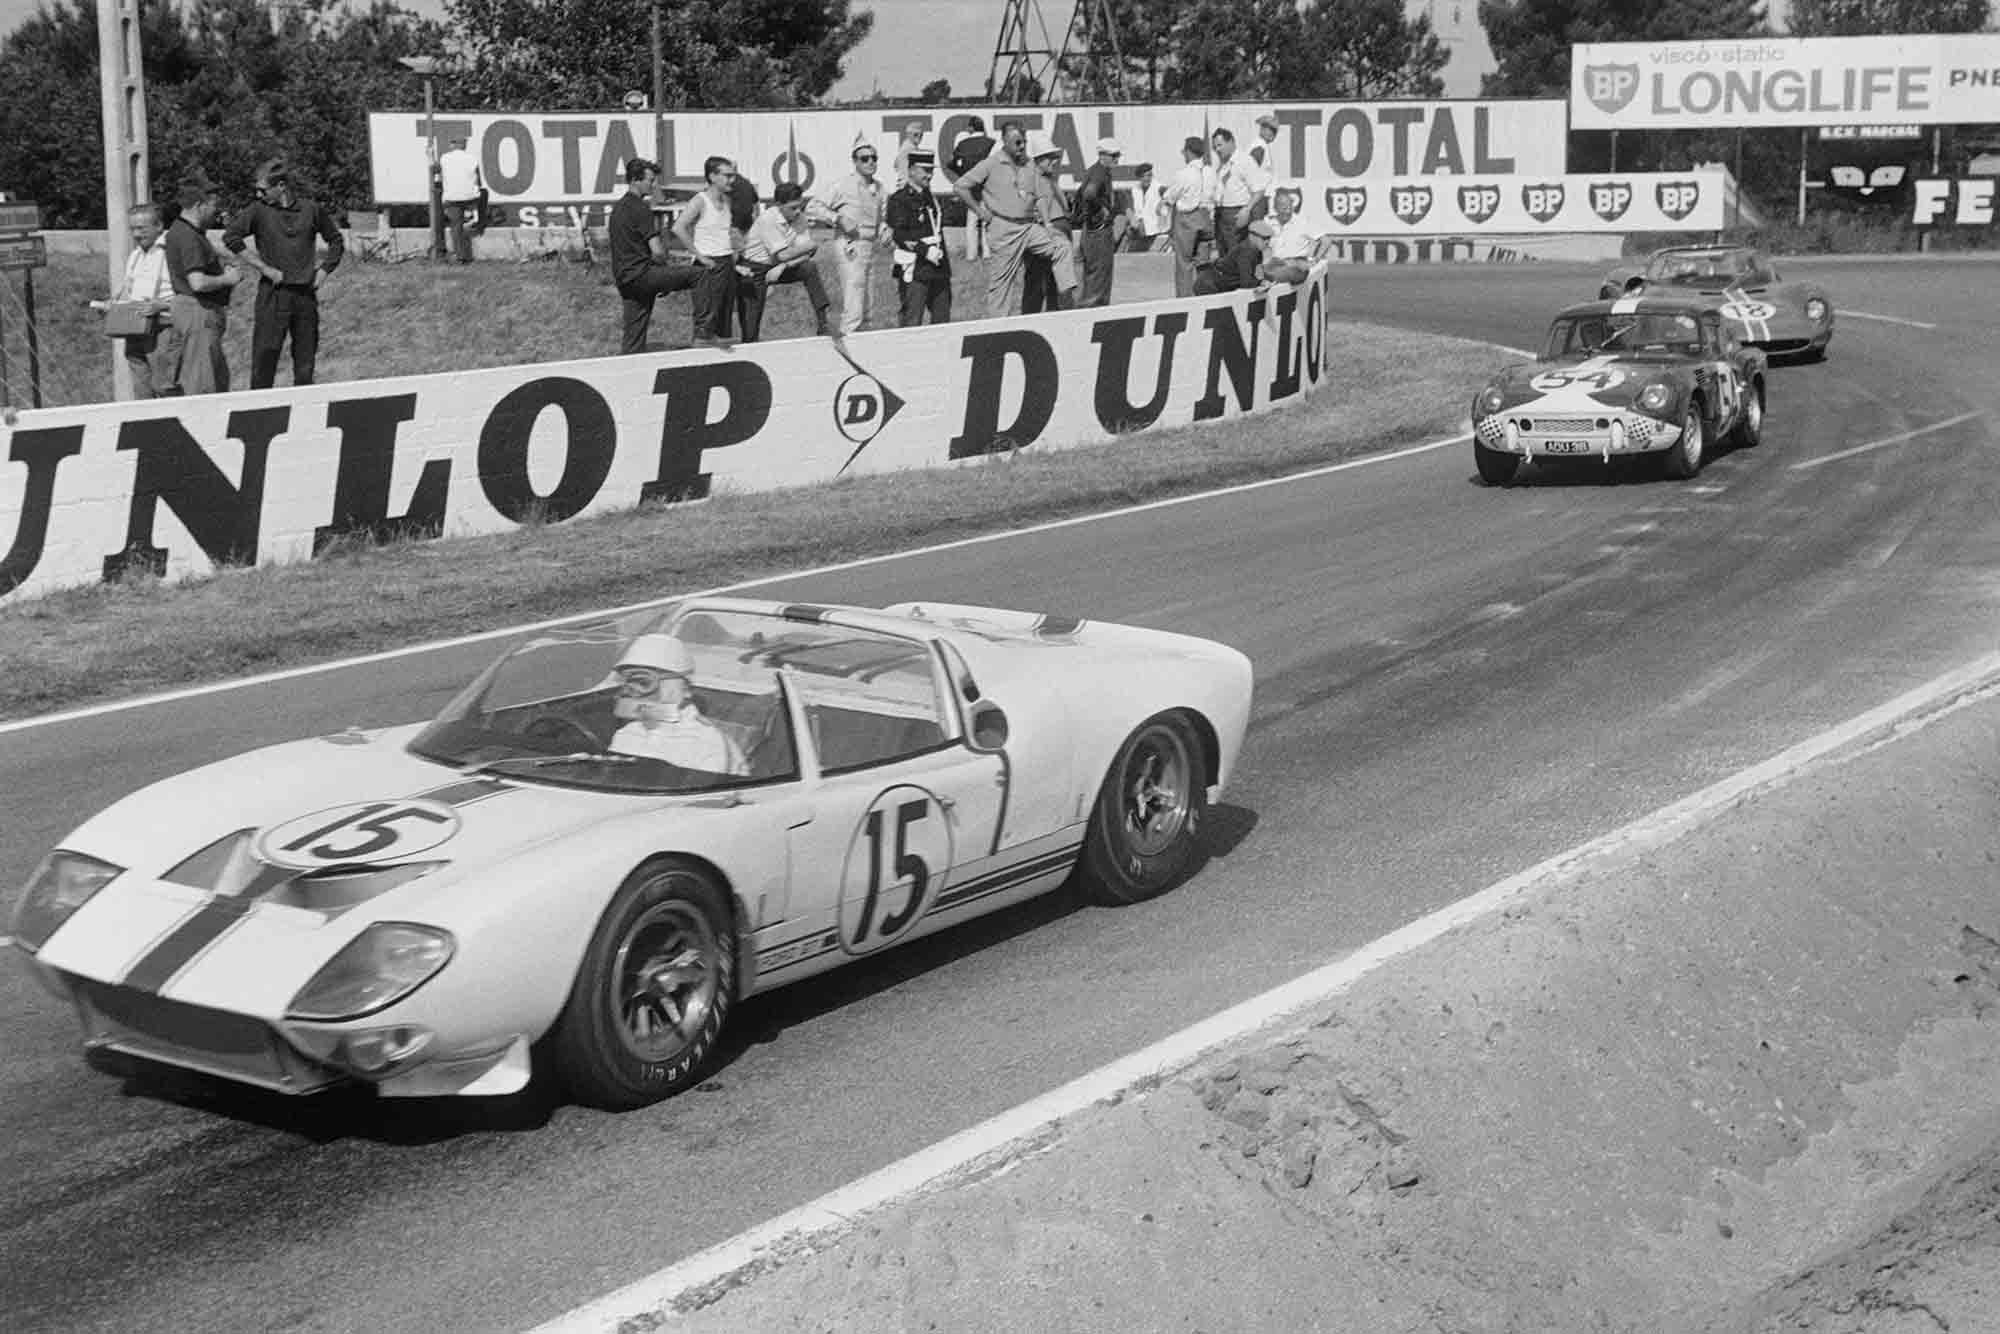 Le Mans, France. 19th - 20th June 1965 Maurice Trintignant/Guy Ligier (Ford GT40 spyder), retired, leads Claude Dubois/Jean-Francois Piot (Triumph Spitfire), 14th position, action.